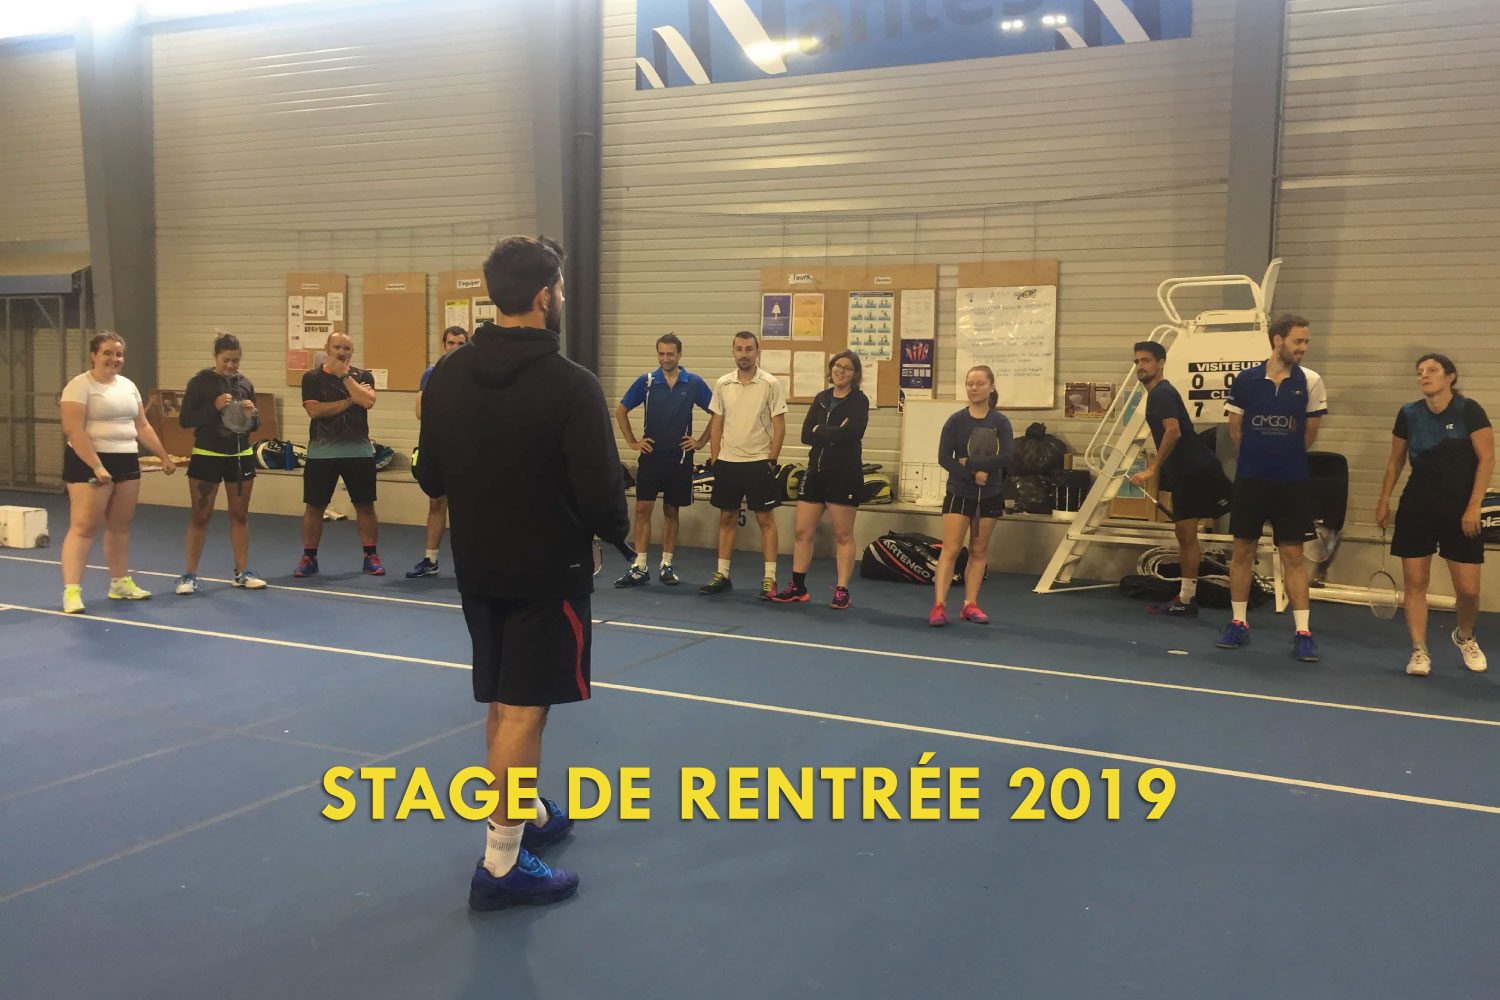 Stage de rentrée 2019 Don Bosco Badminton Nantes